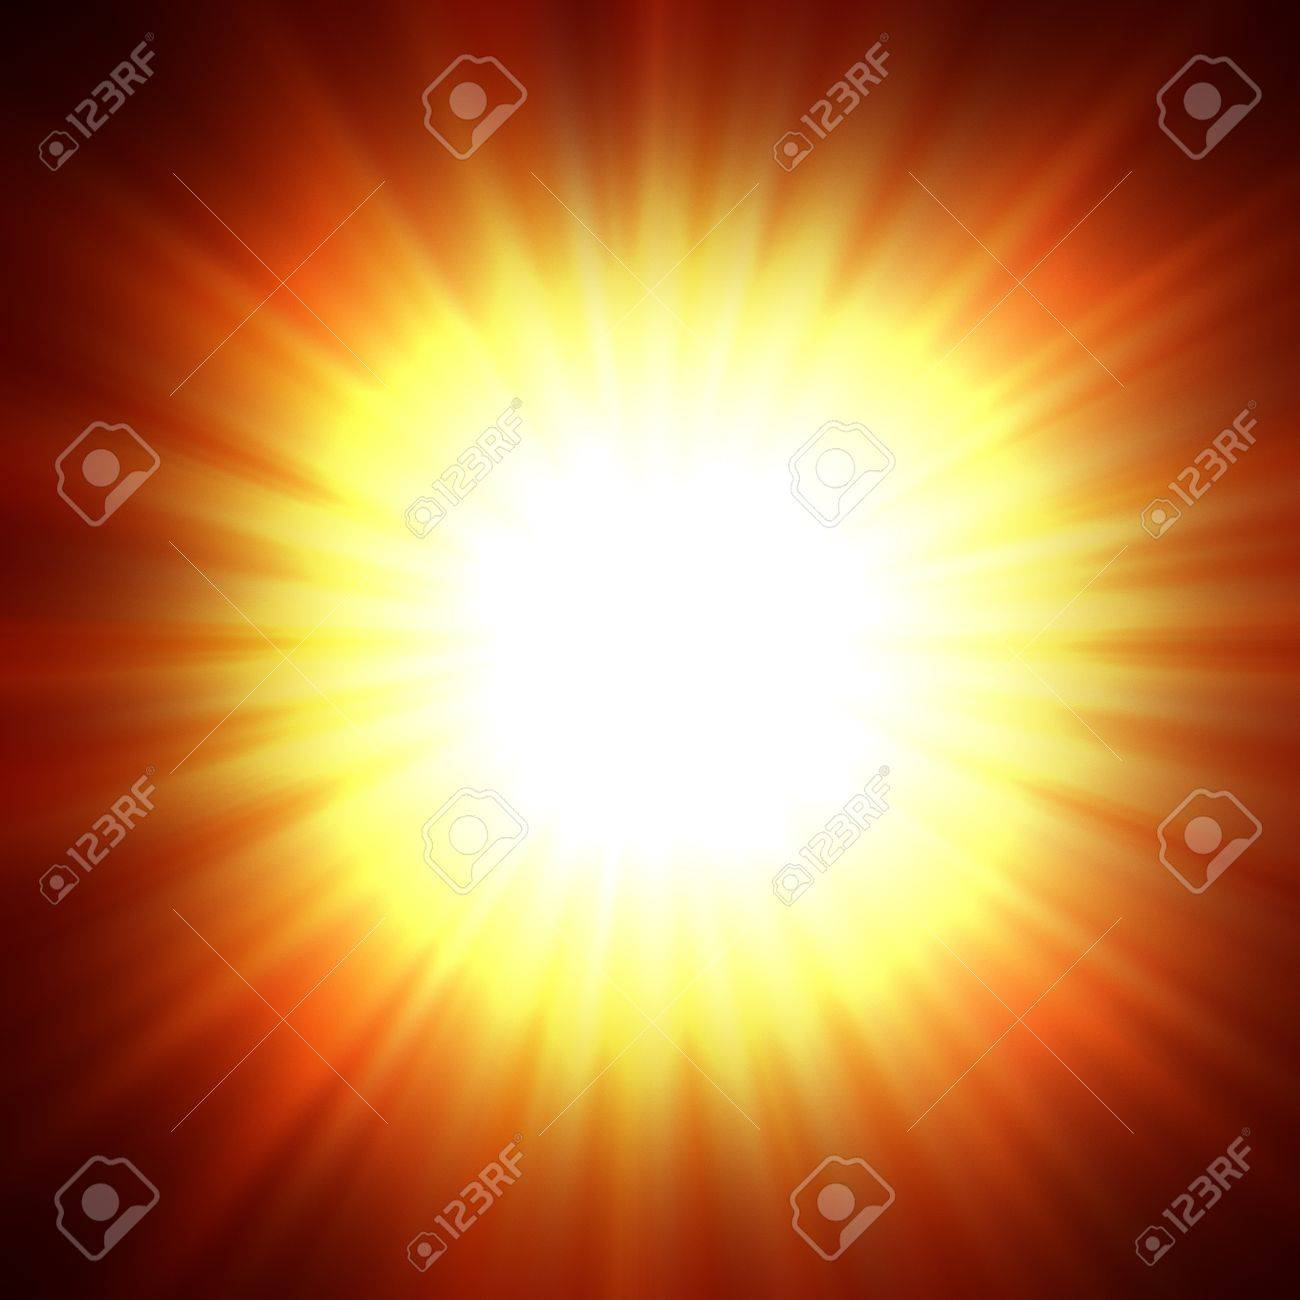 A star burst or lens flare over a black background  It also looks like an abstract illustration of the sun Stock Photo - 12776688